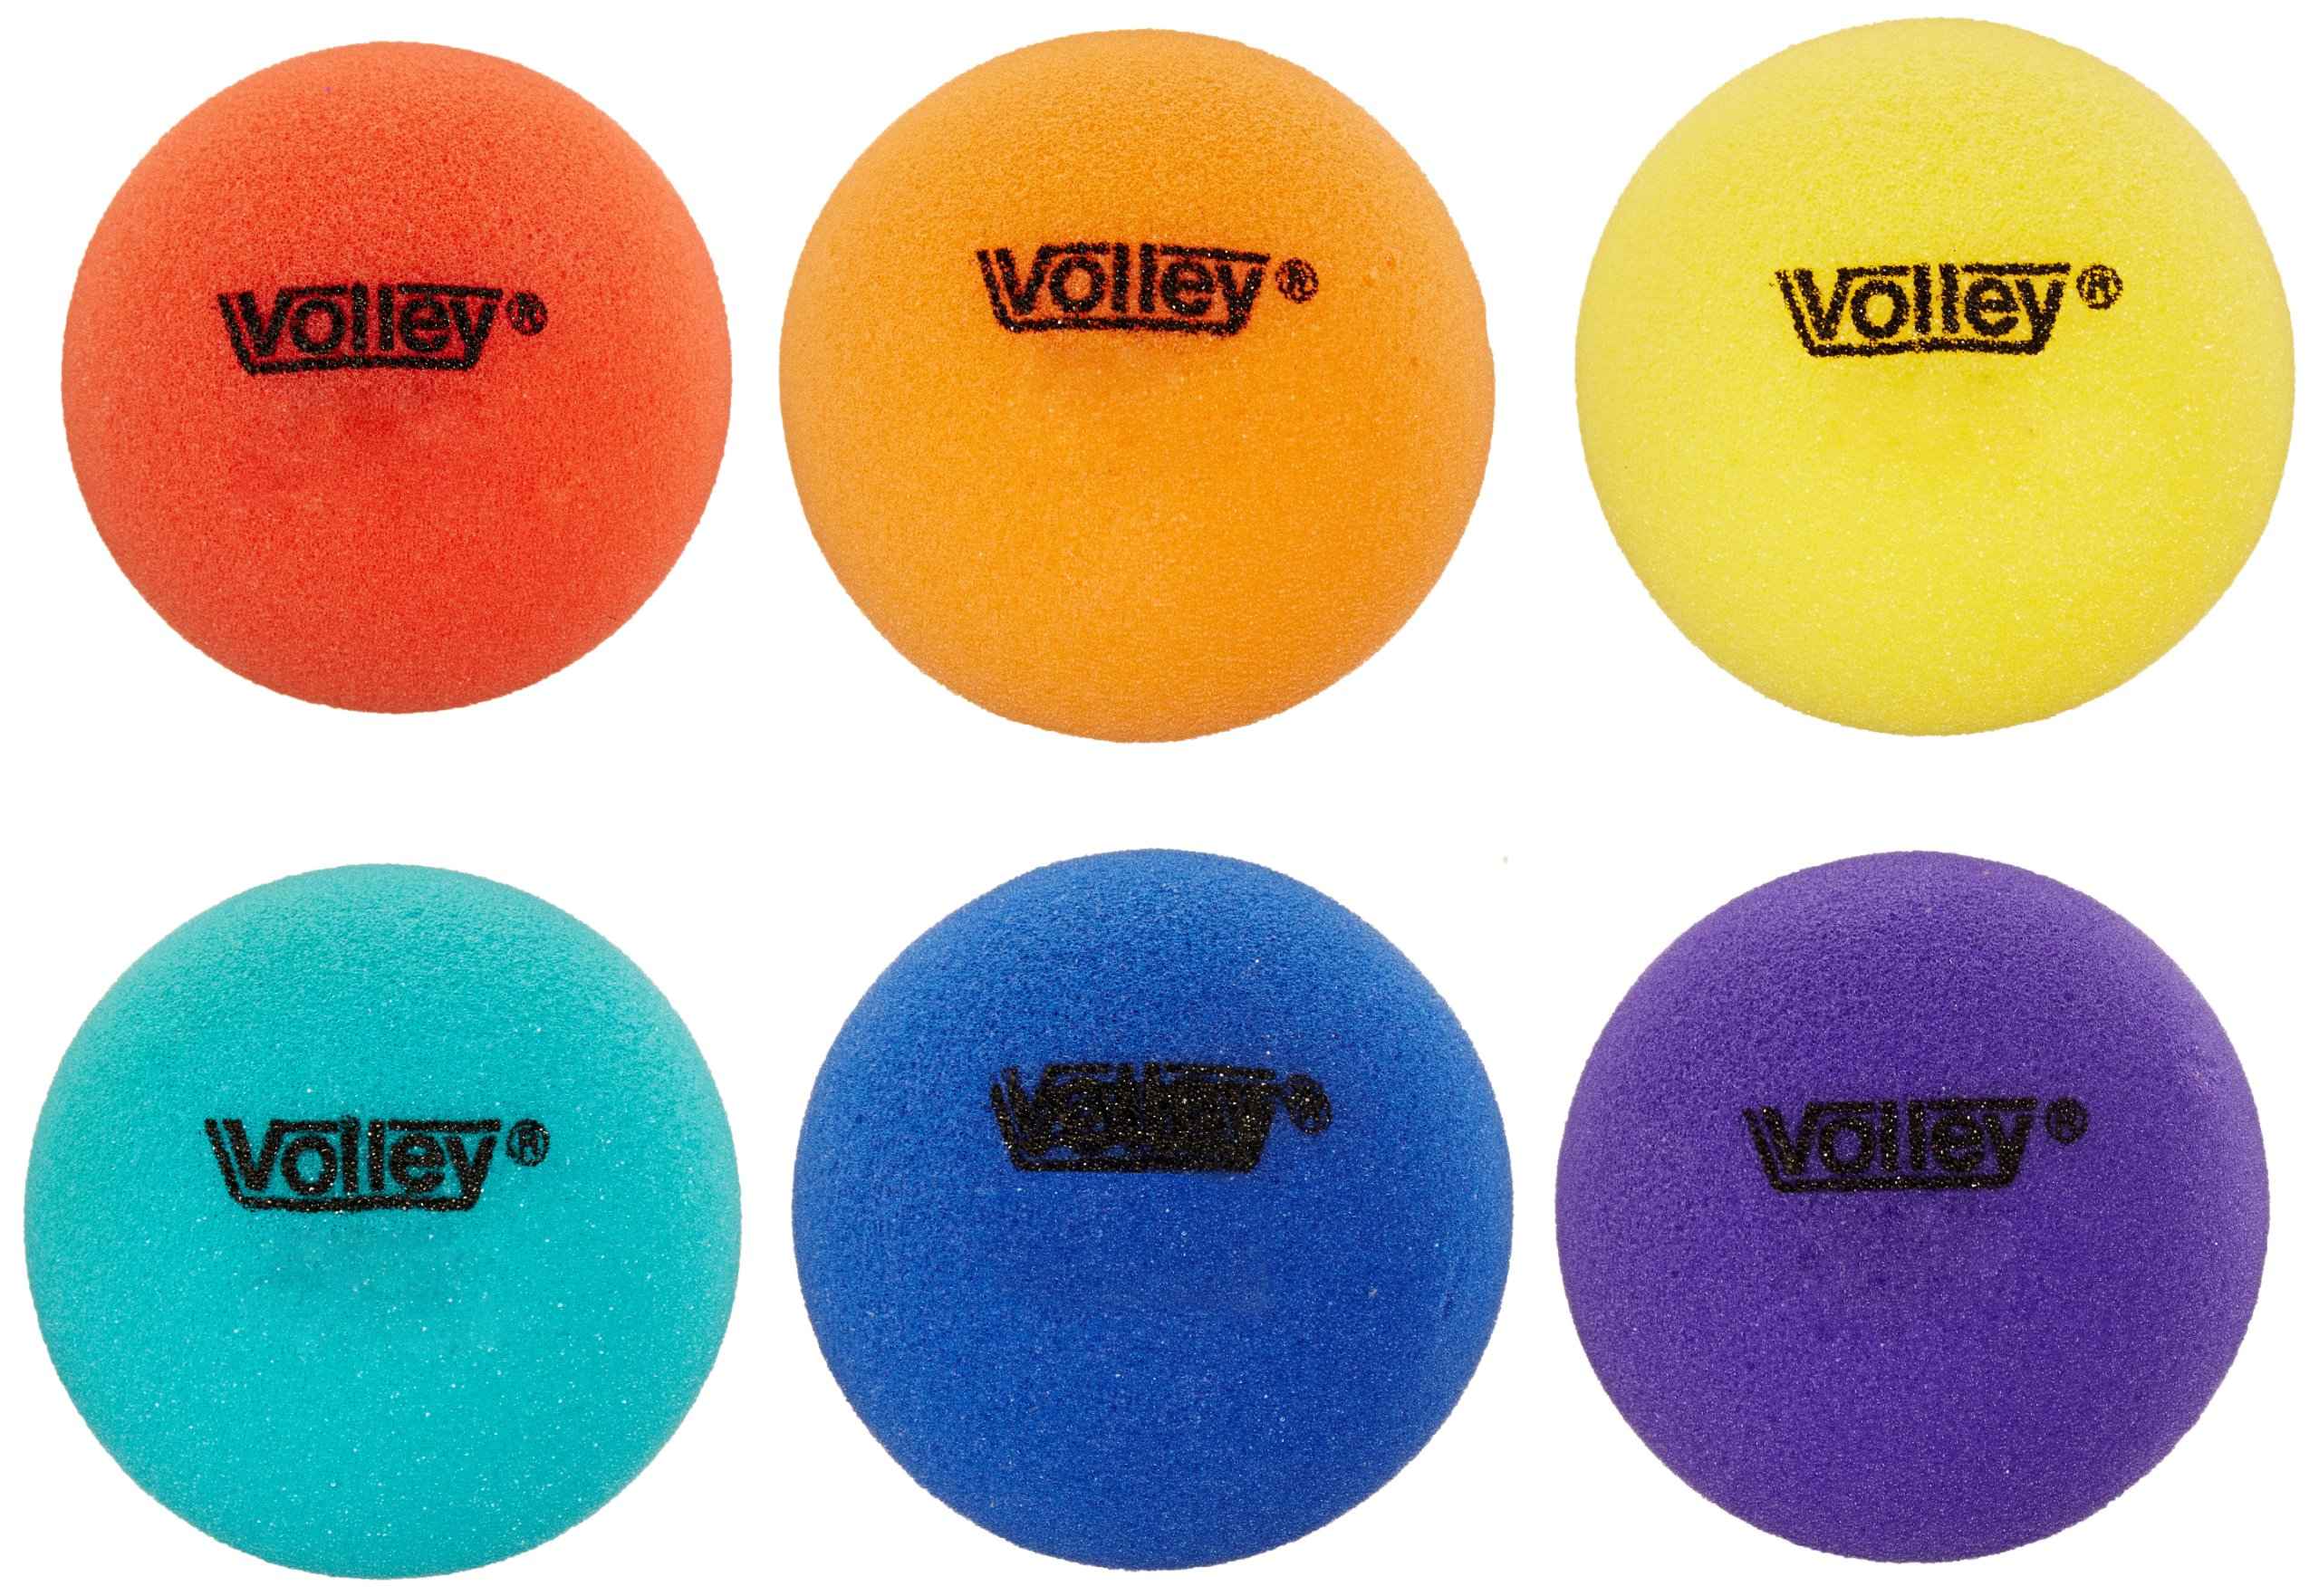 Volley 3-1/2 in Uncoated Very Low Bounce Foam Balls, Set of 6 by Volley